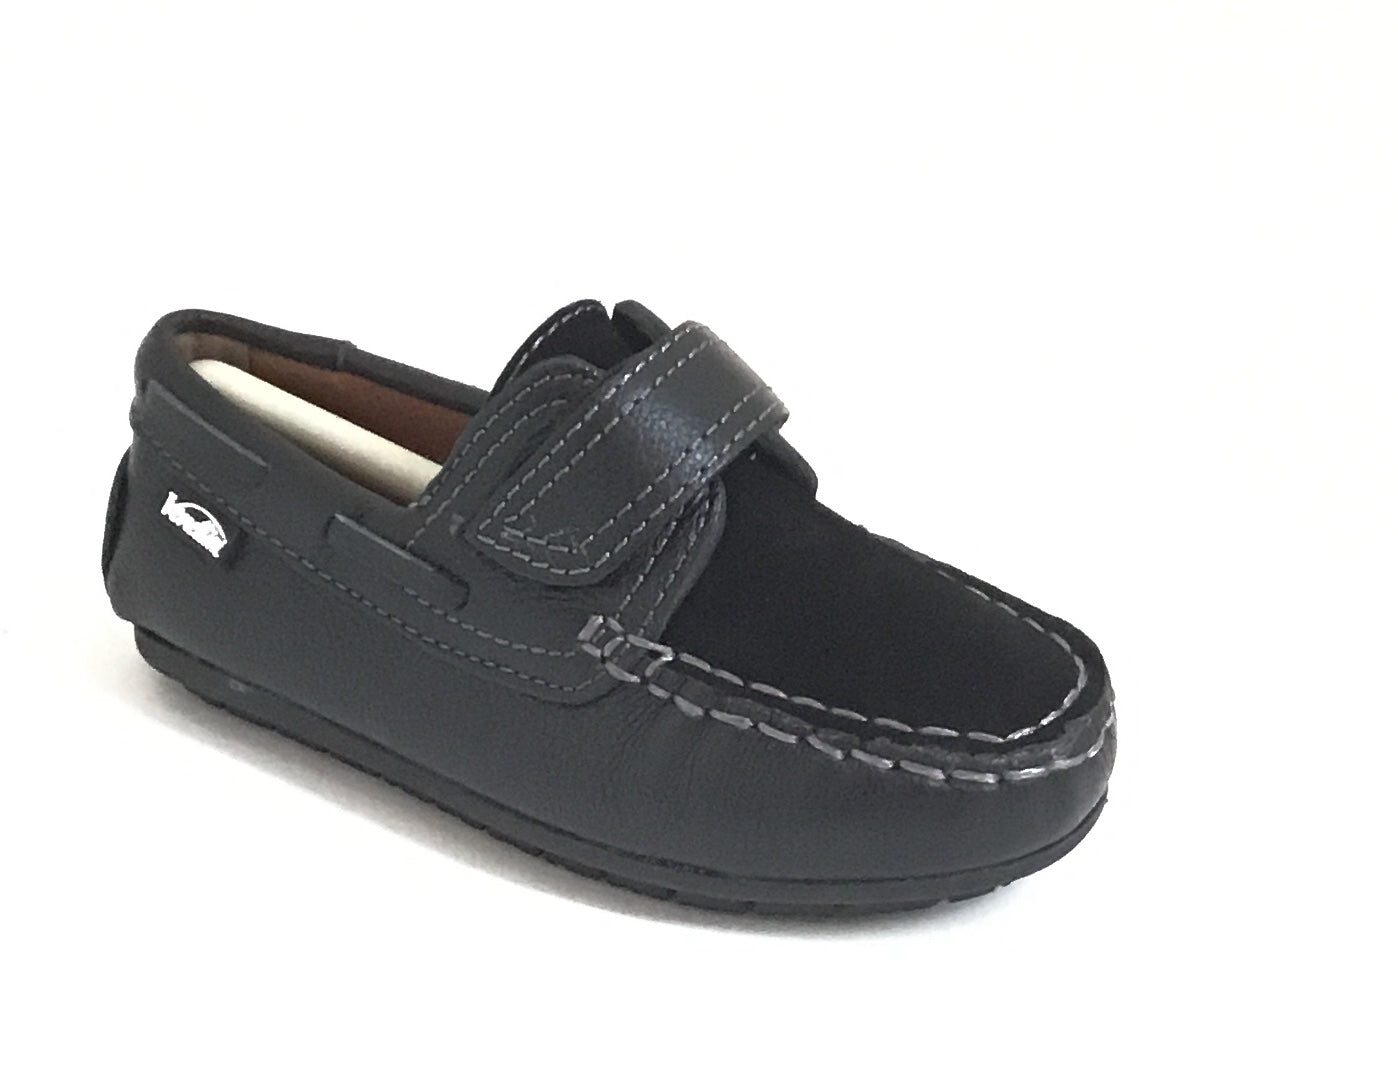 Venettini Black Velcro Loafer with Suede